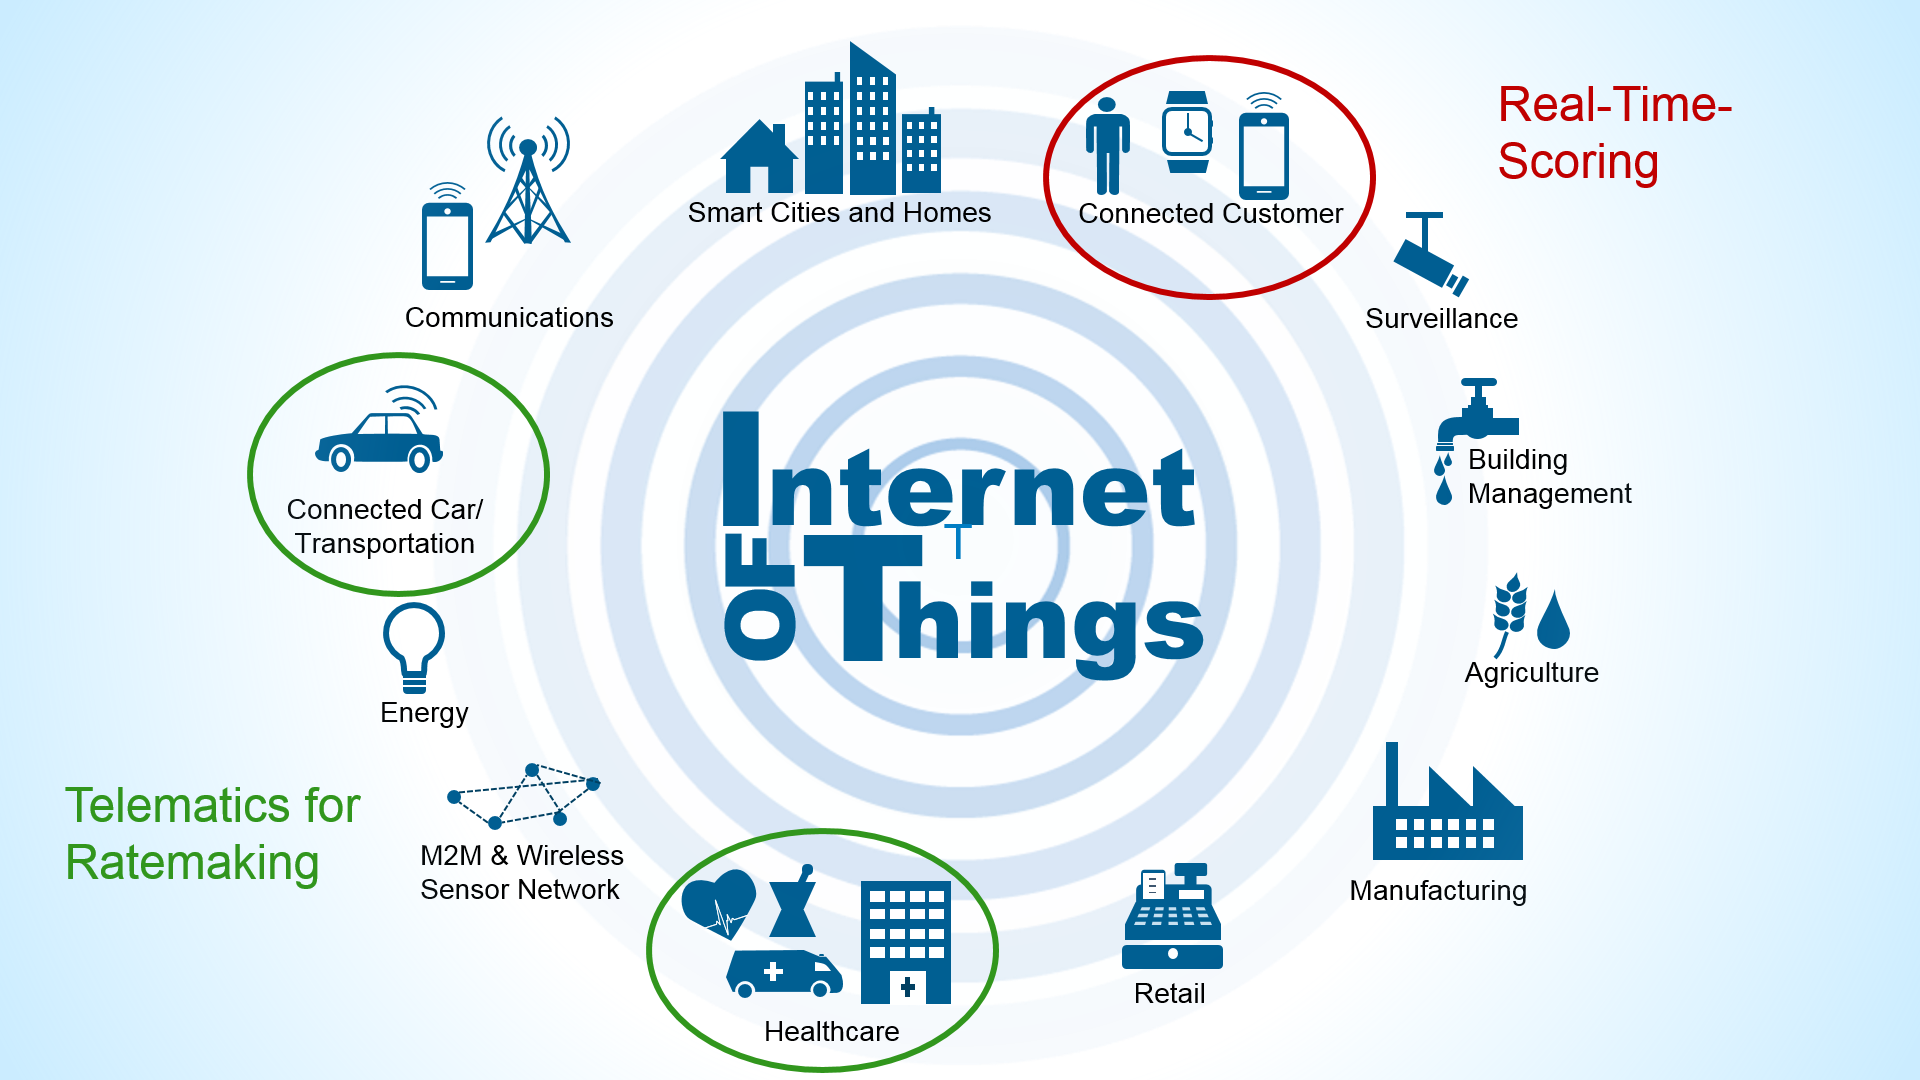 Five keys to understand the different levels of IoT